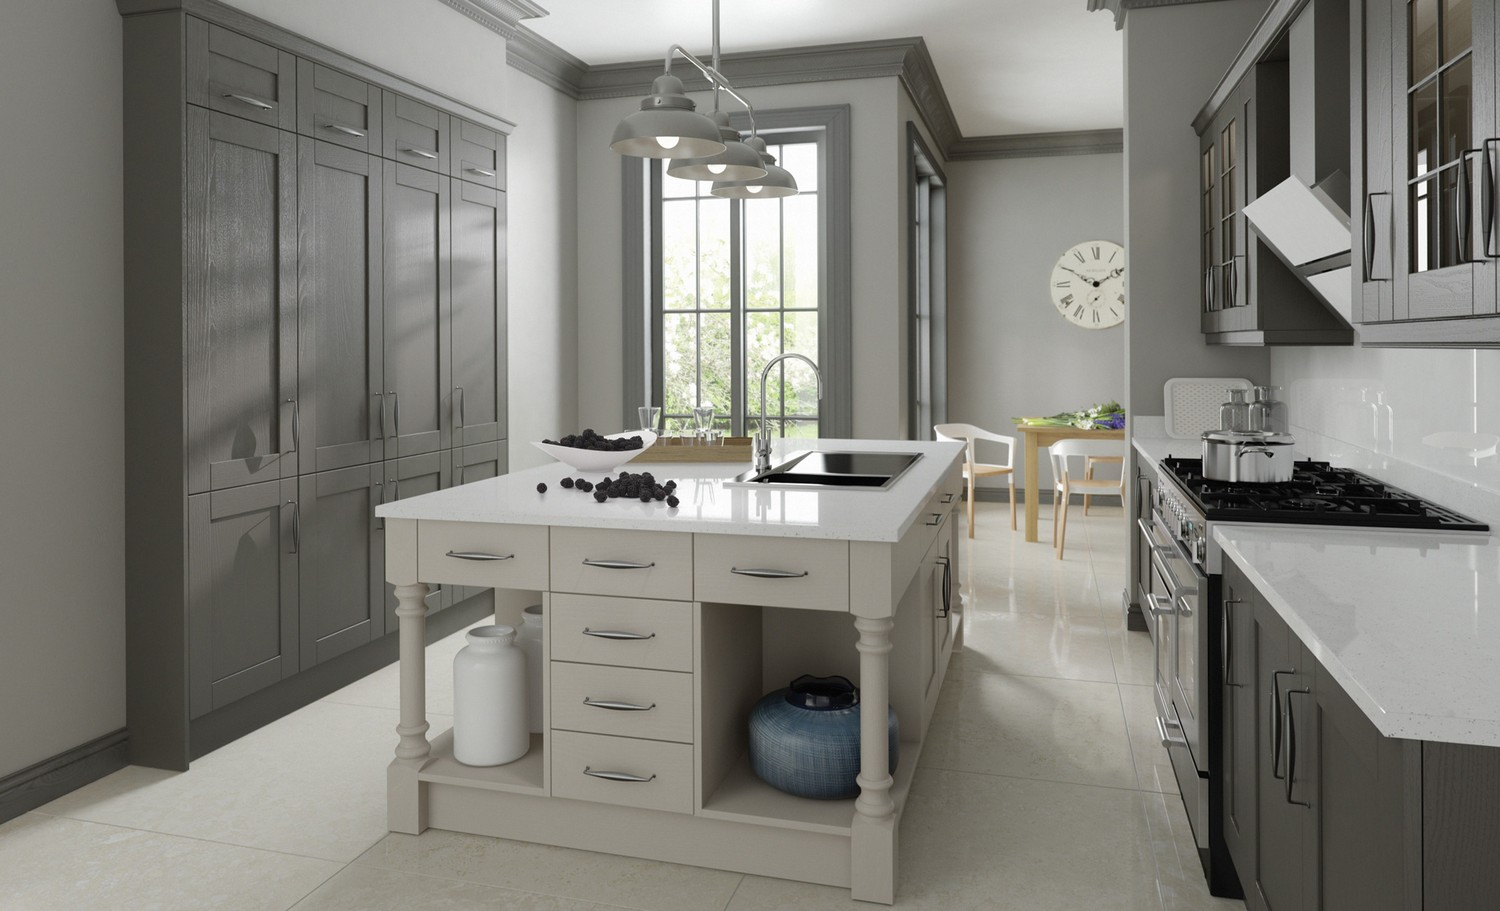 Traditional Kitchens Liverpool Cleveland Kitchens